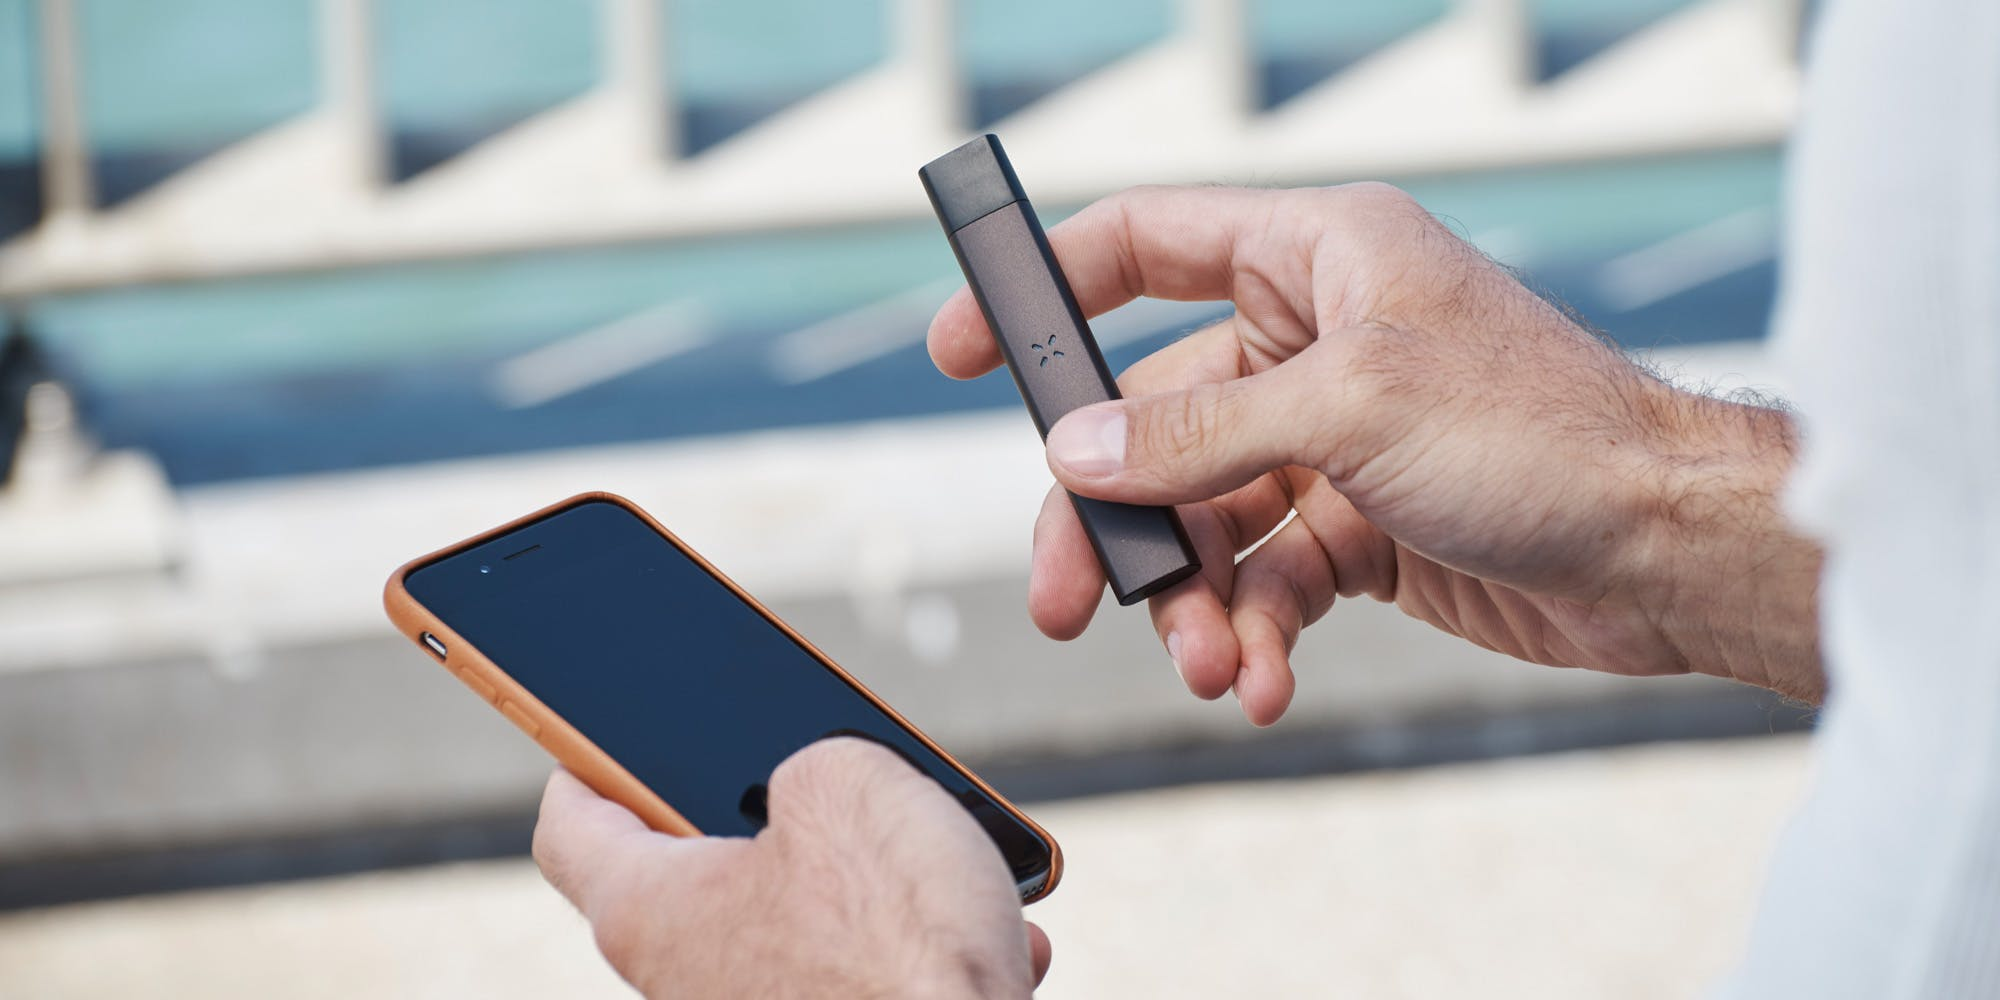 3 Vaporizers that can connect to your phone